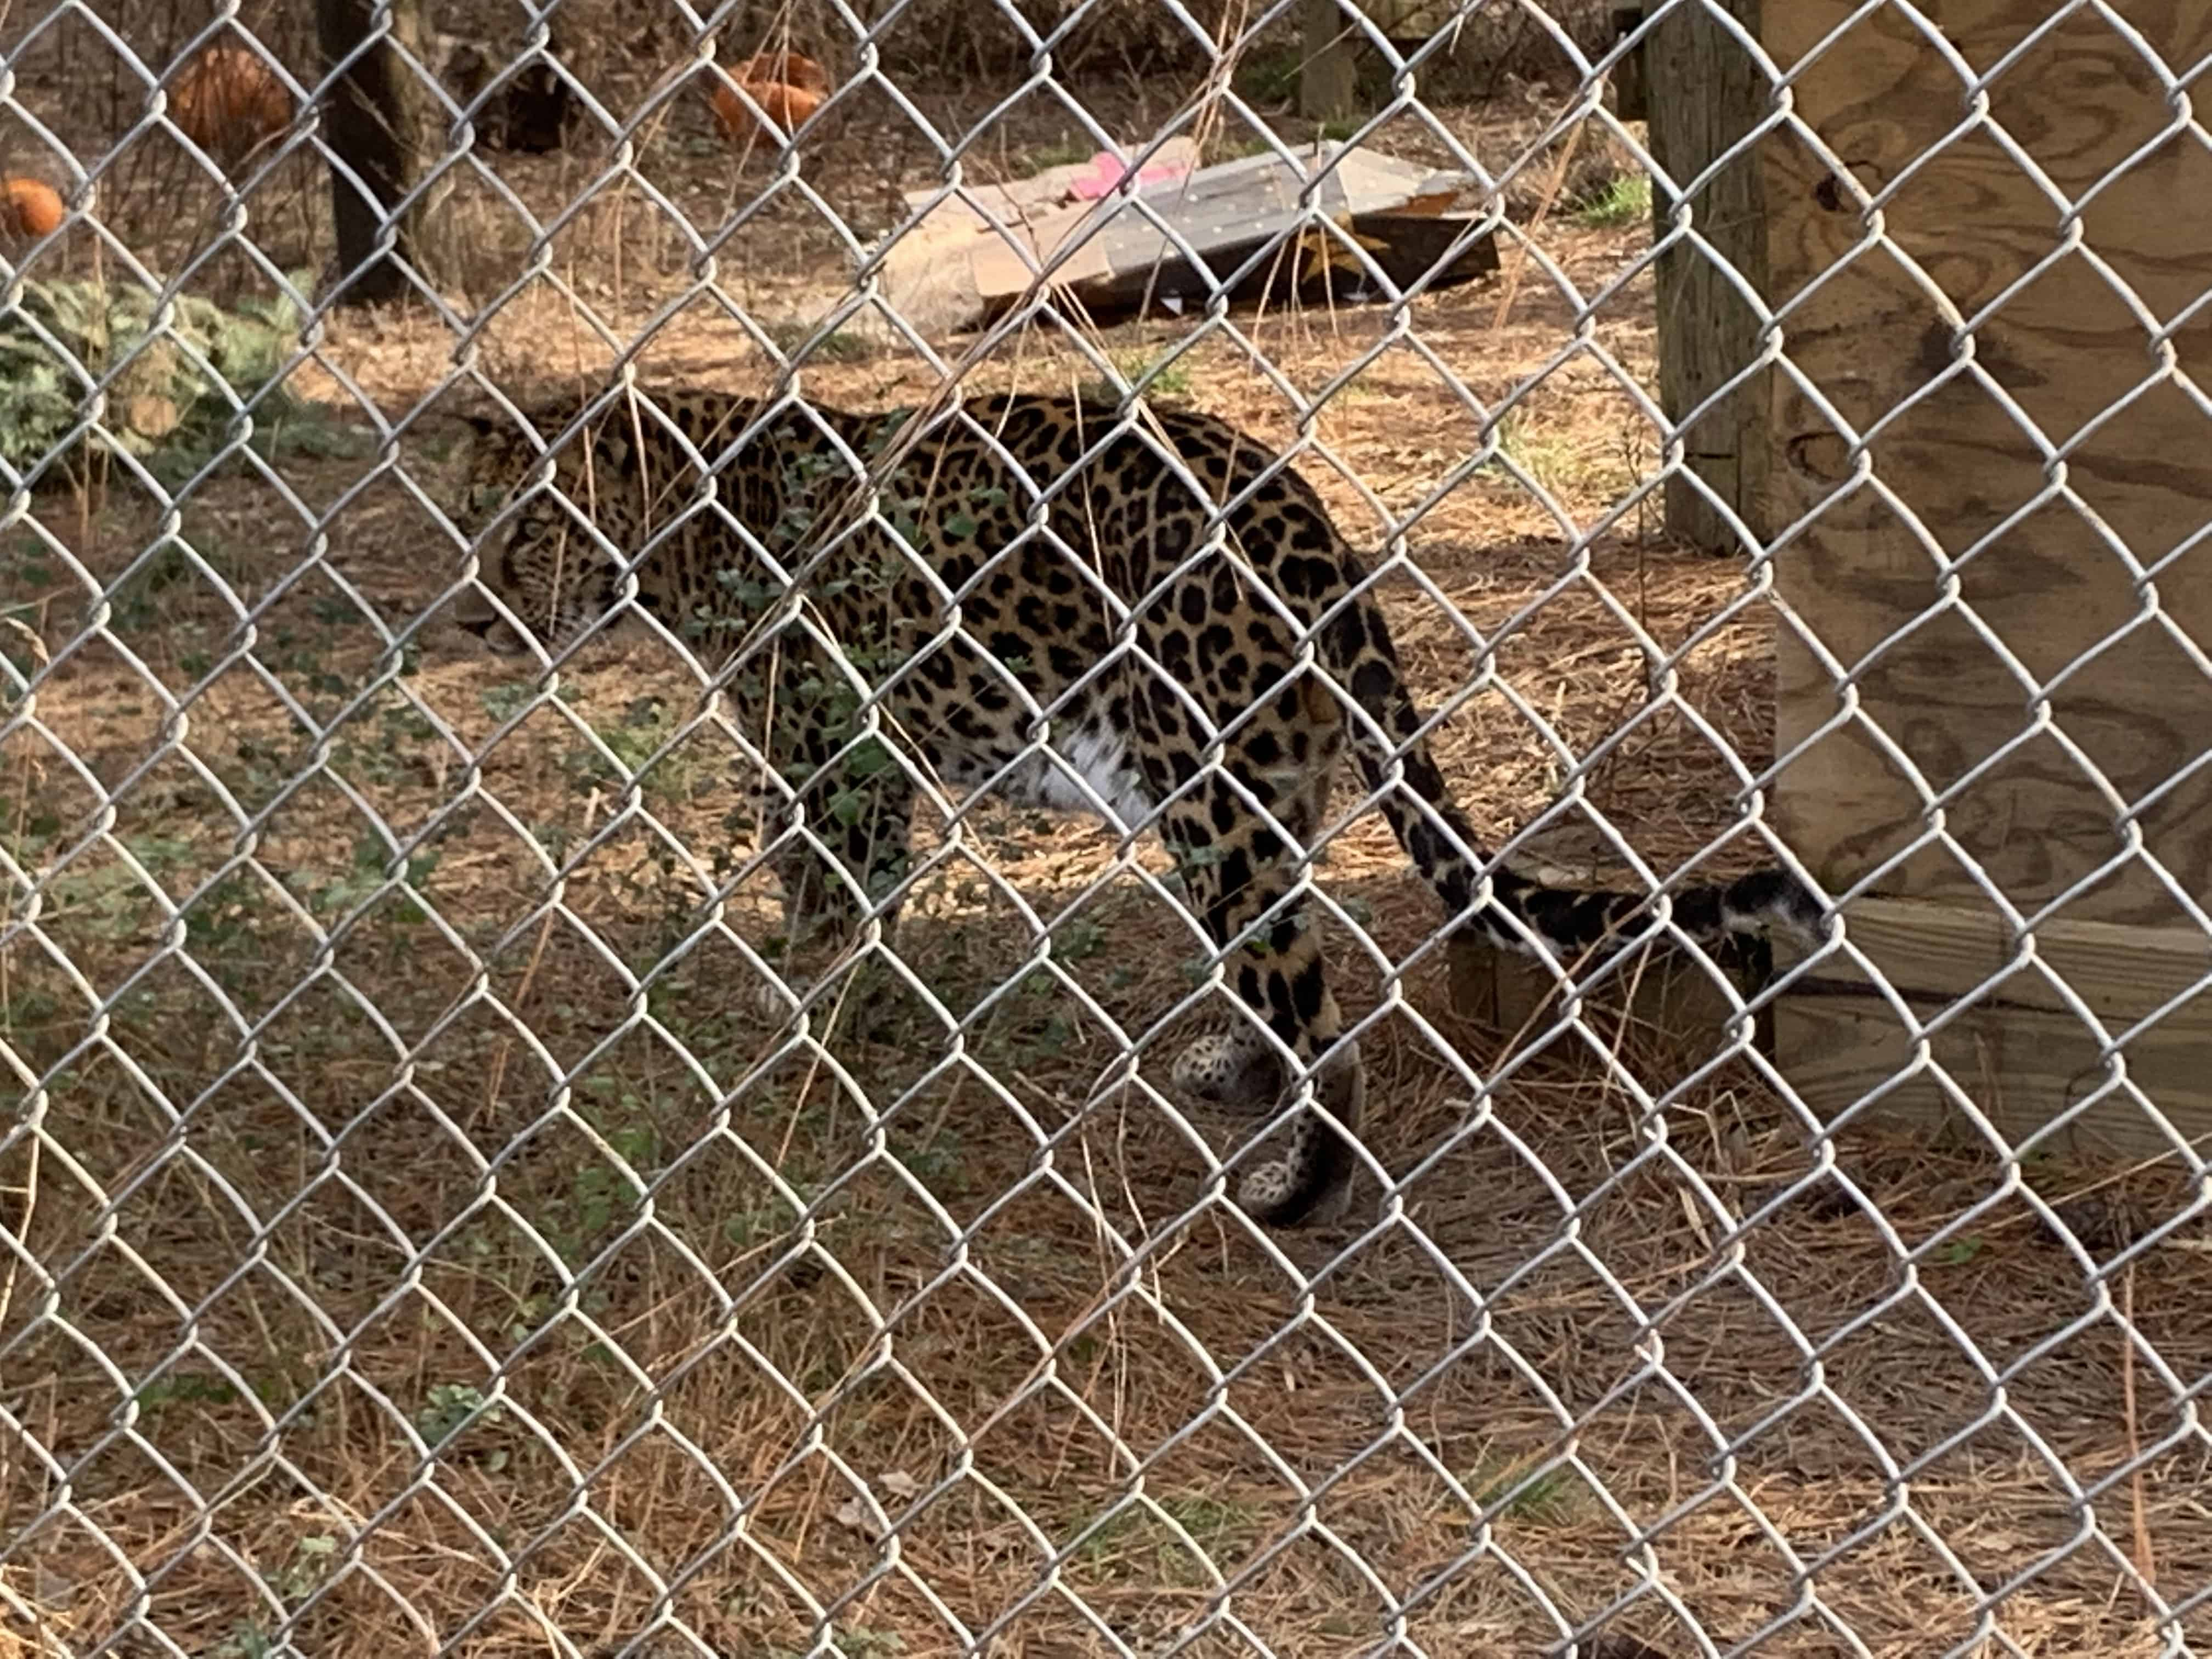 leopard behind wire fence